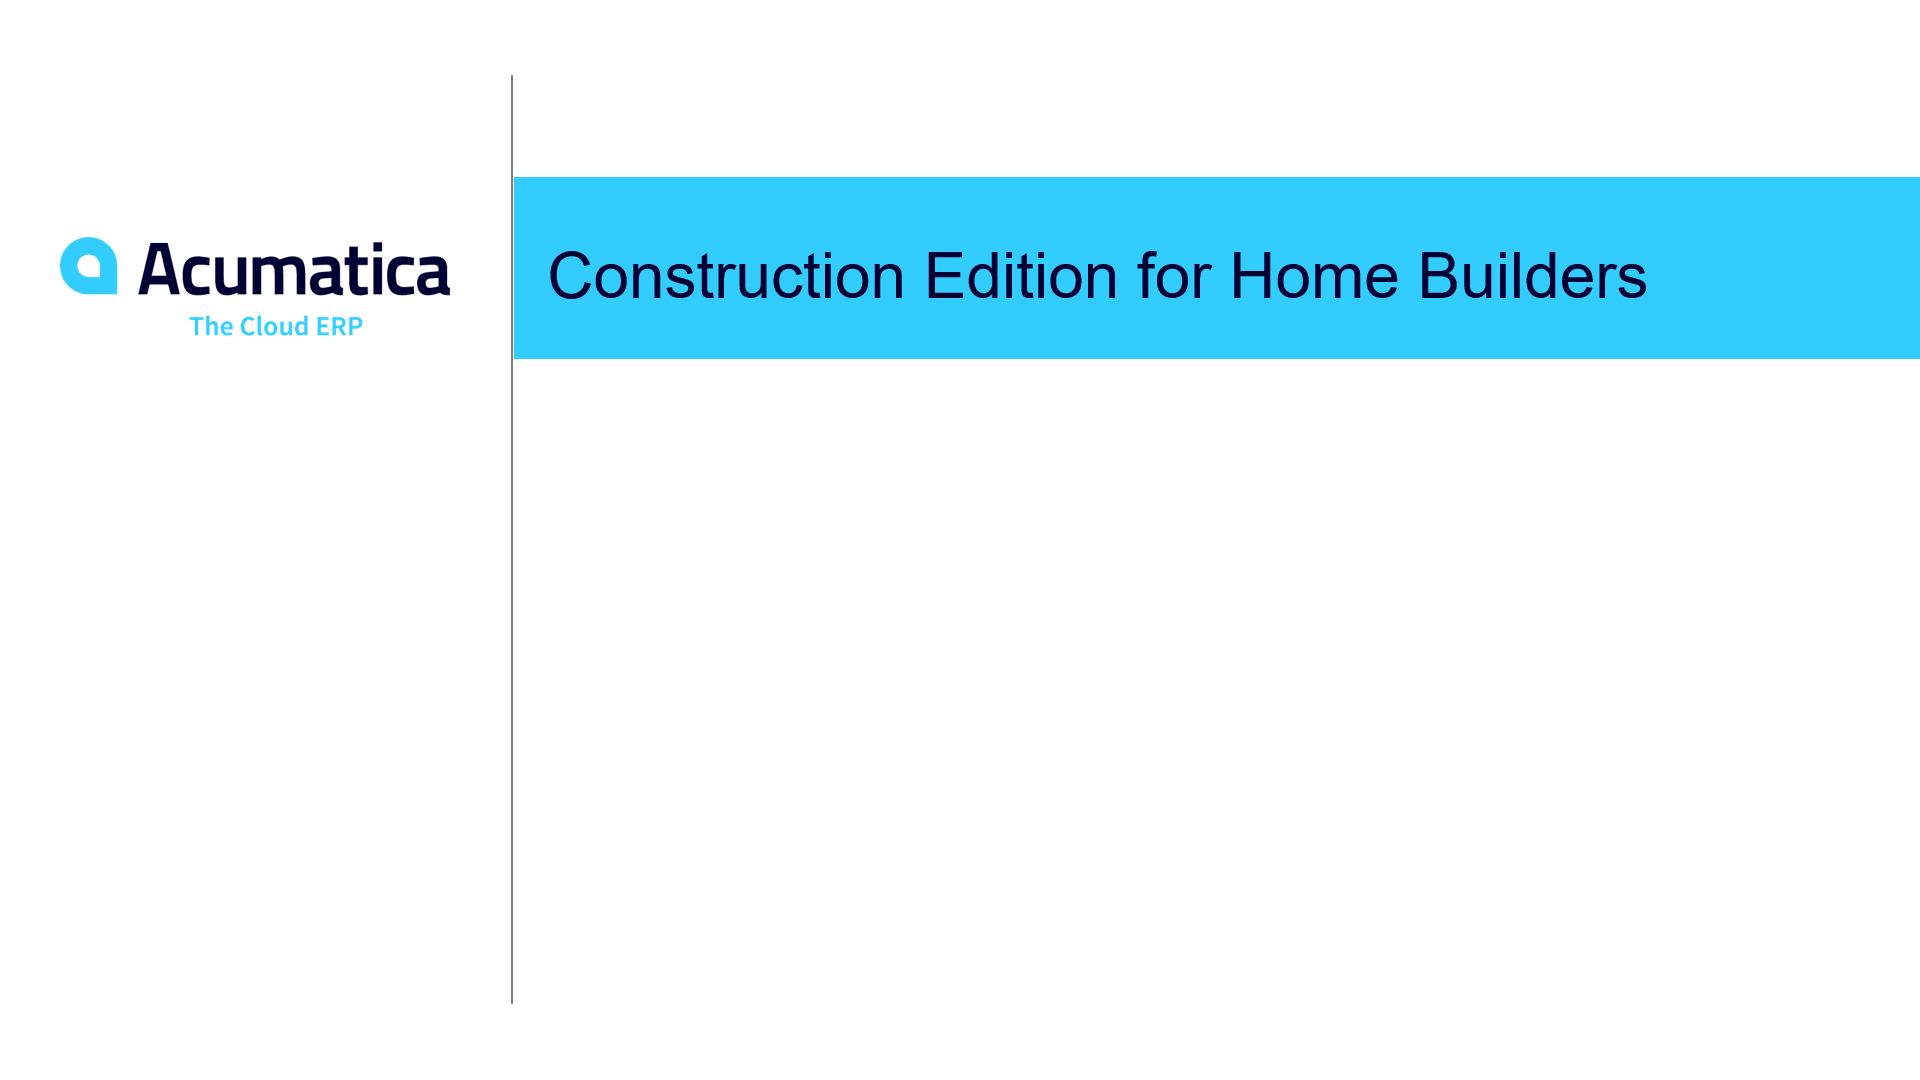 Construction Edition for Home Builders